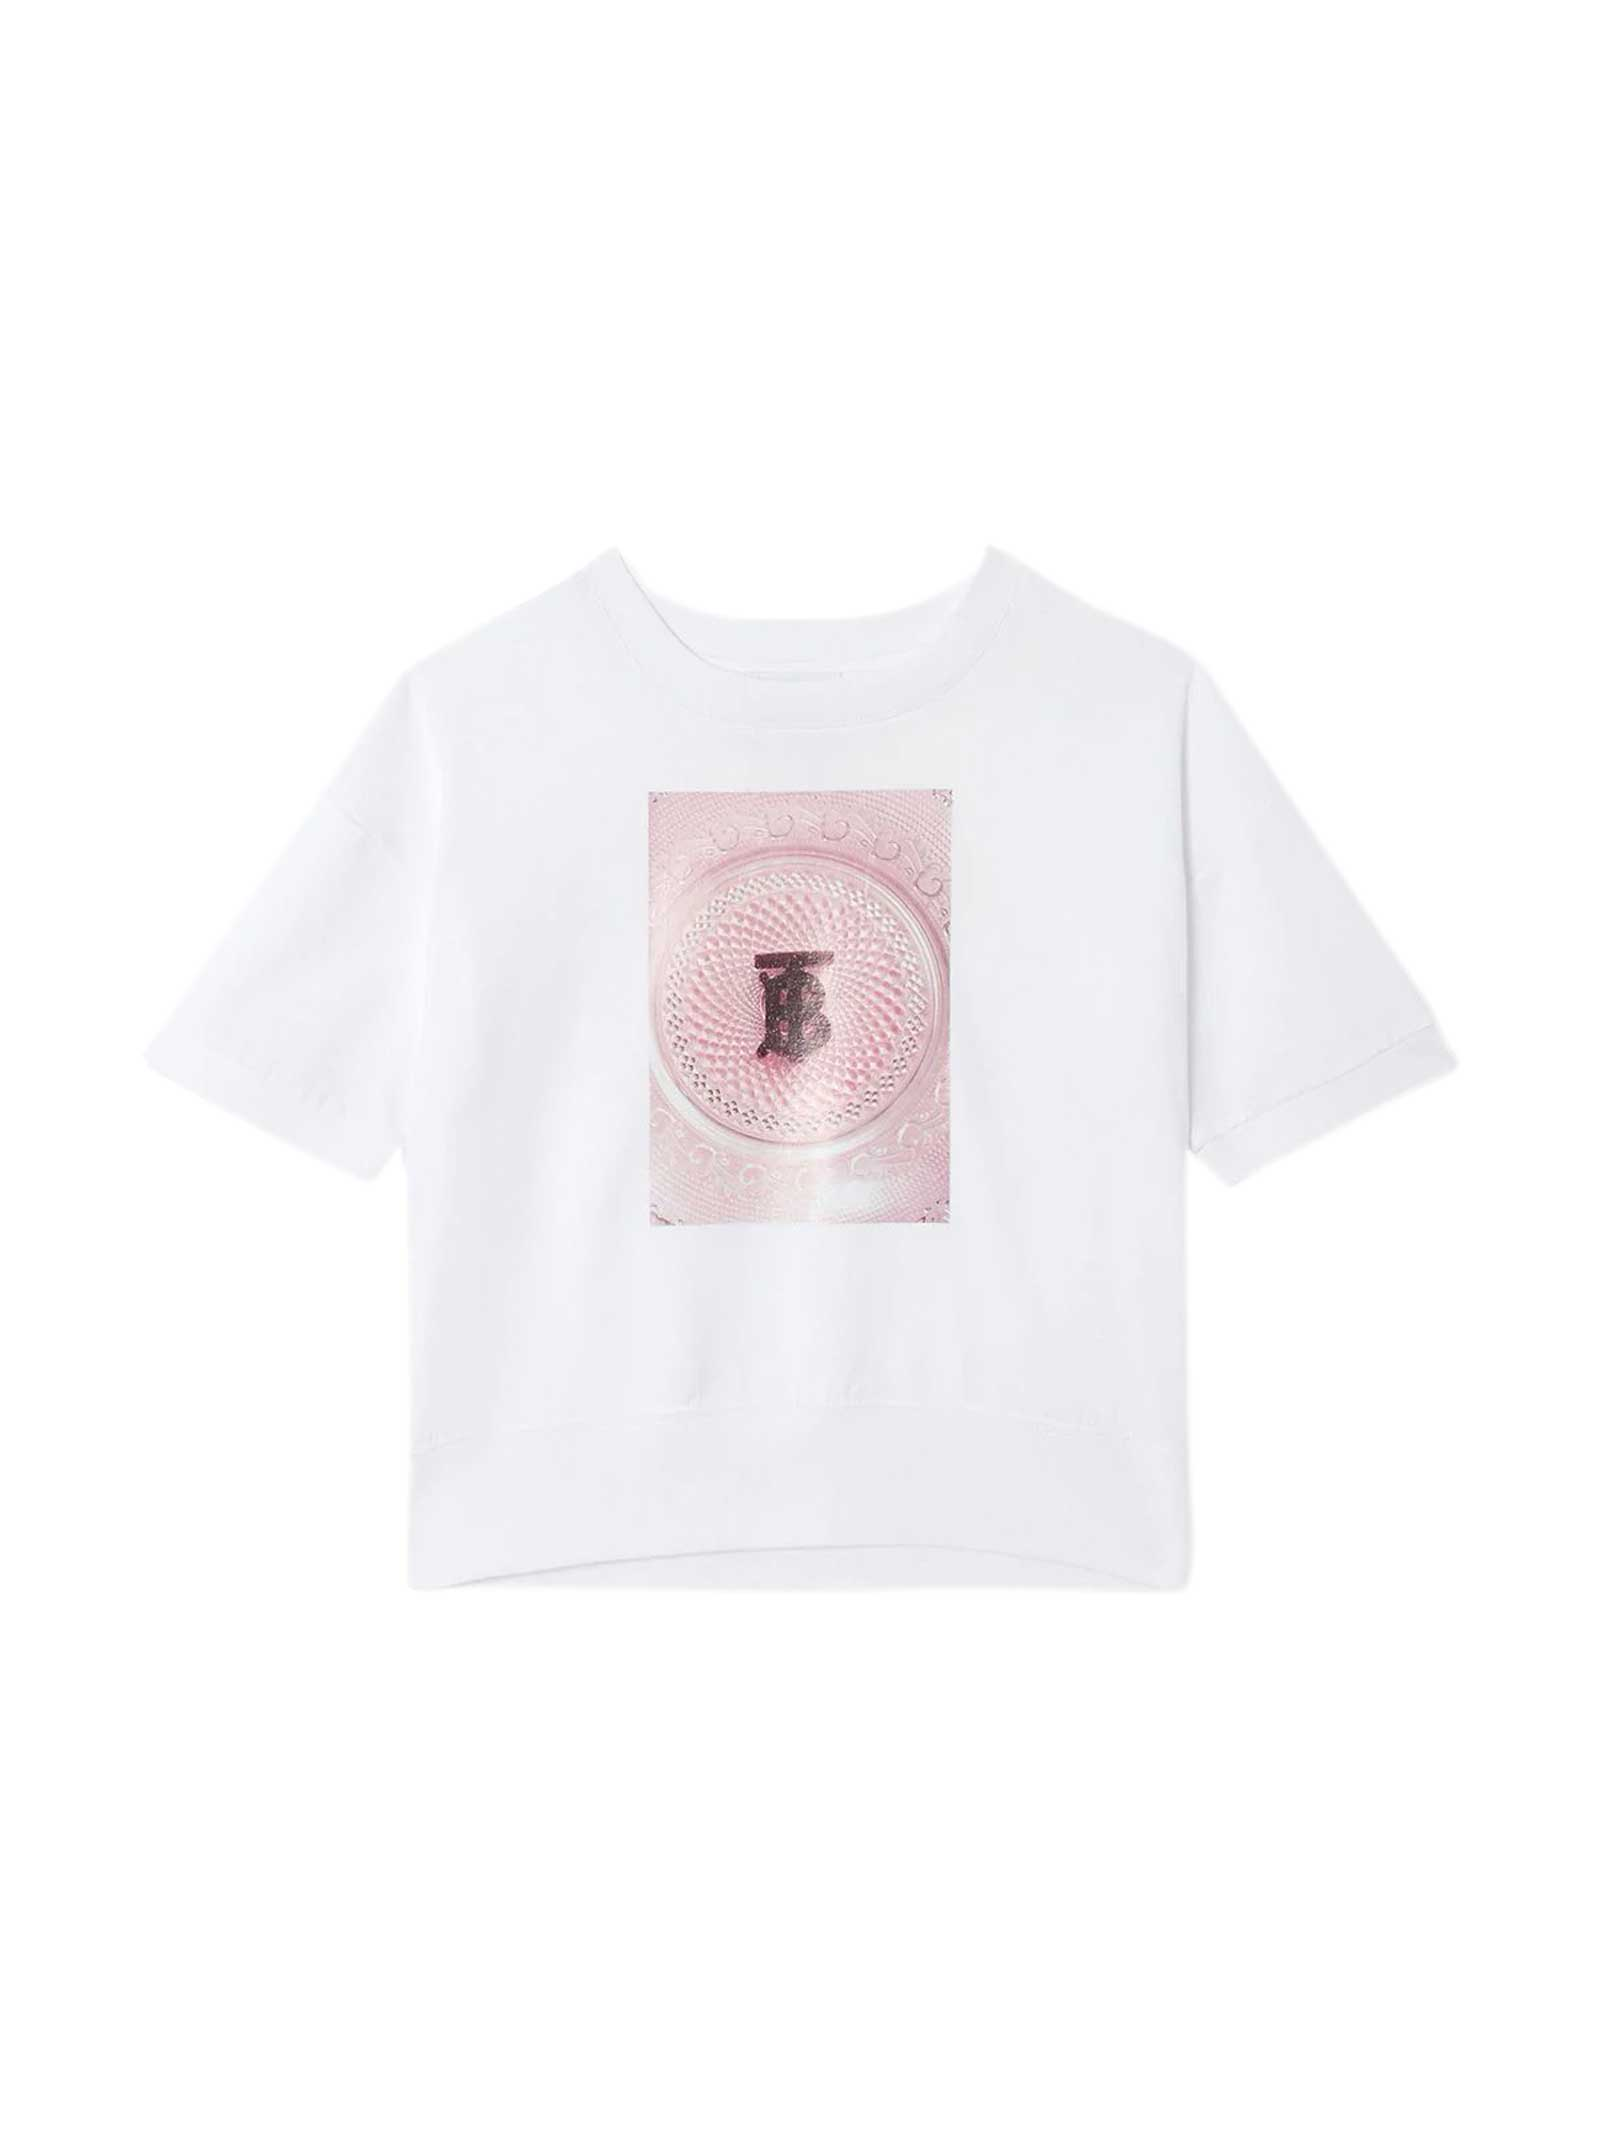 Burberry Kids' White T-shirt In Bianco